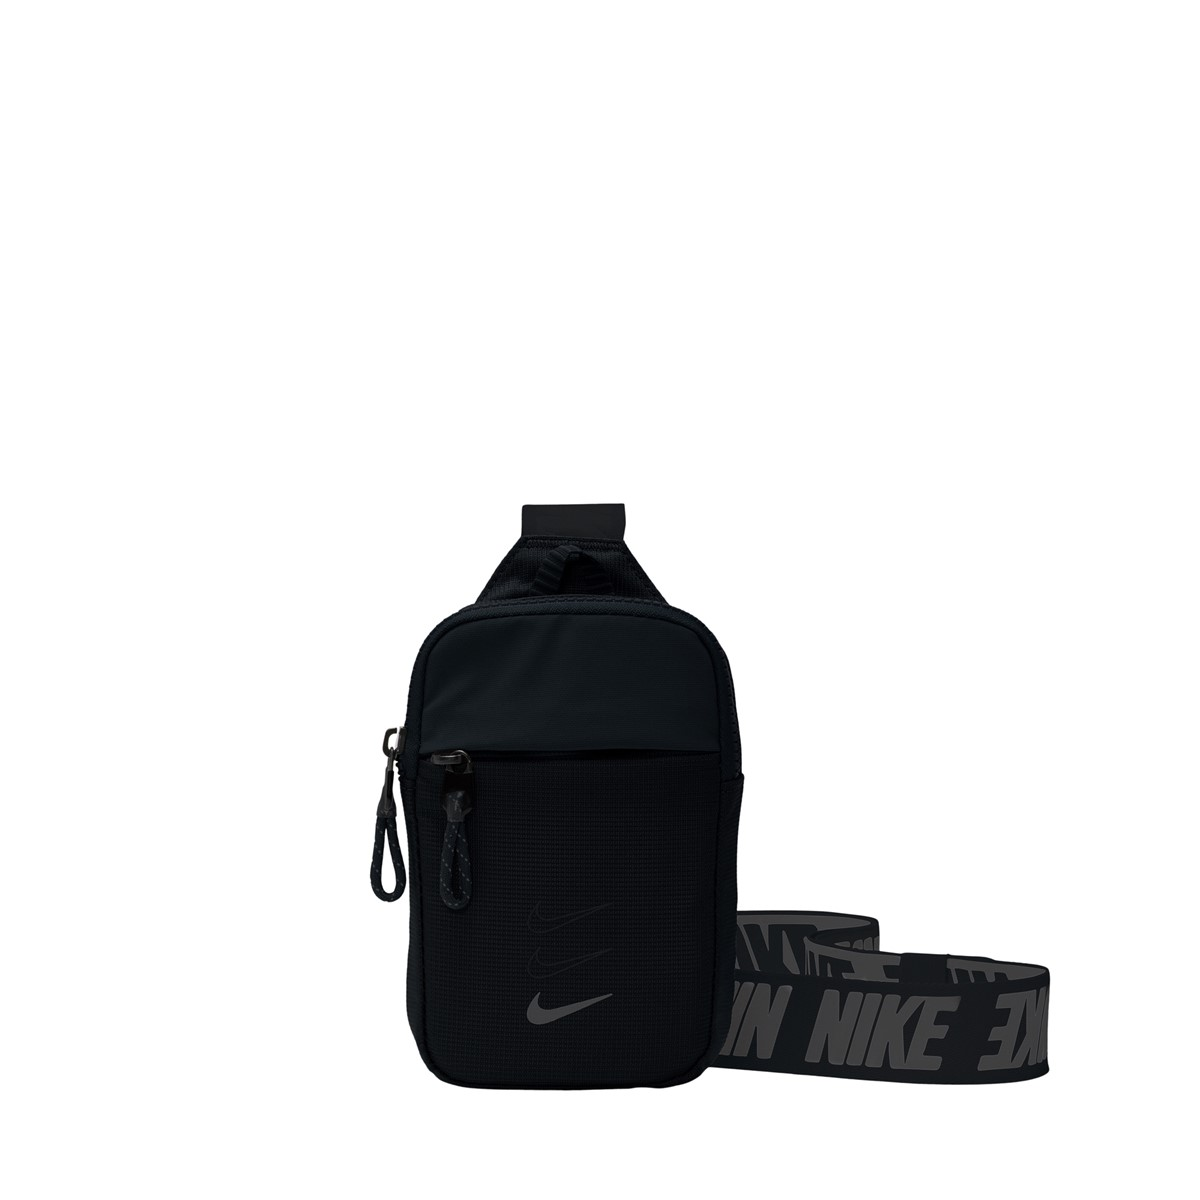 Nike Sportswear Essentials Crossbody Bag in Black